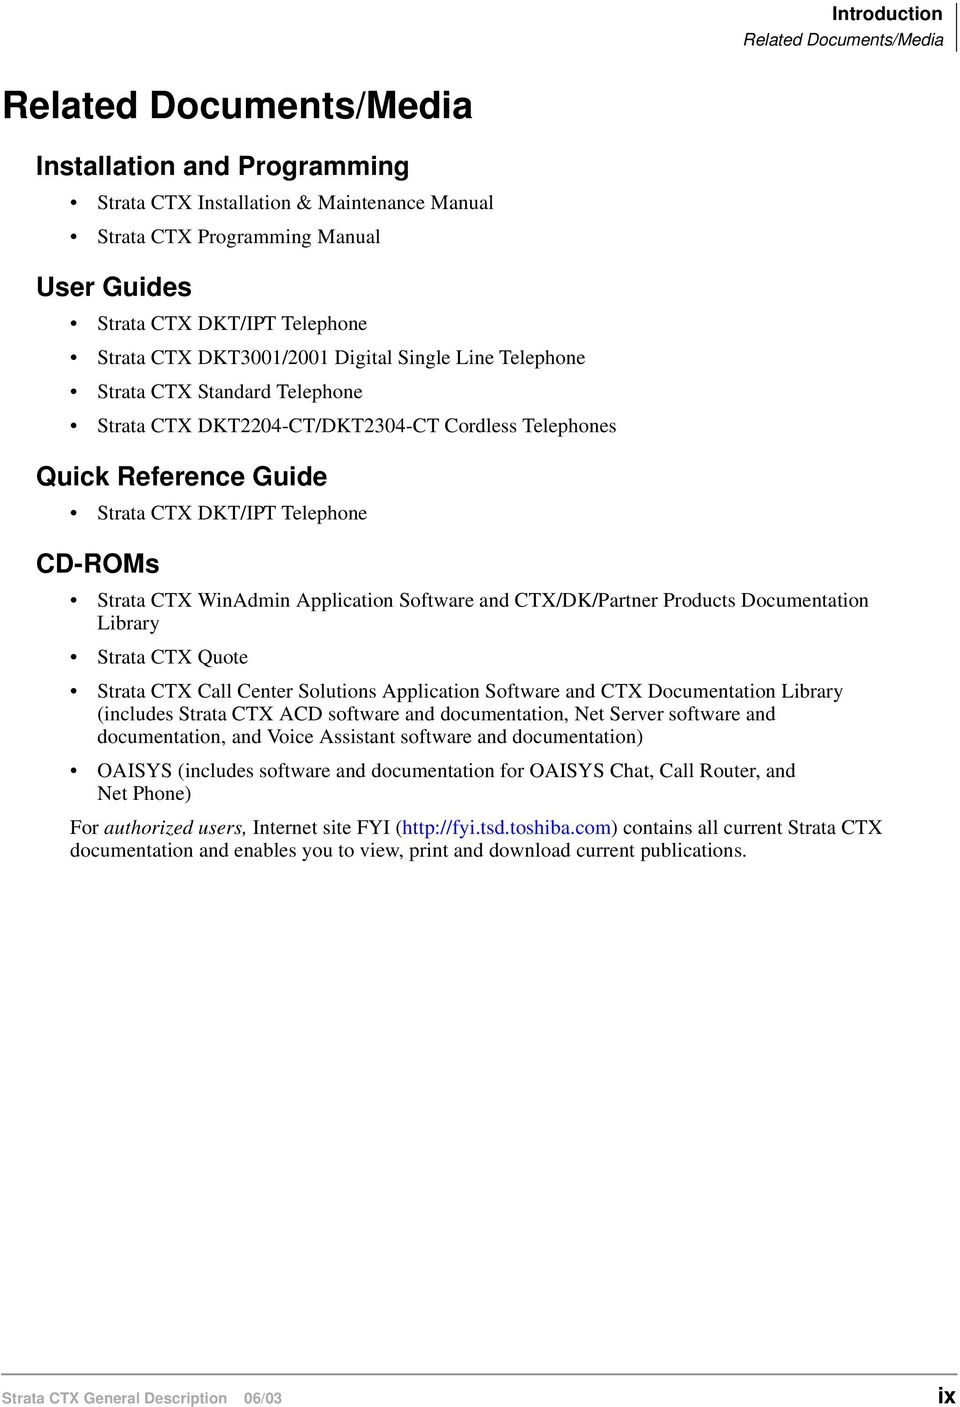 CD-ROMs Strata CTX WinAdmin Application Software and CTX/DK/Partner Products Documentation Library Strata CTX Quote Strata CTX Call Center Solutions Application Software and CTX Documentation Library